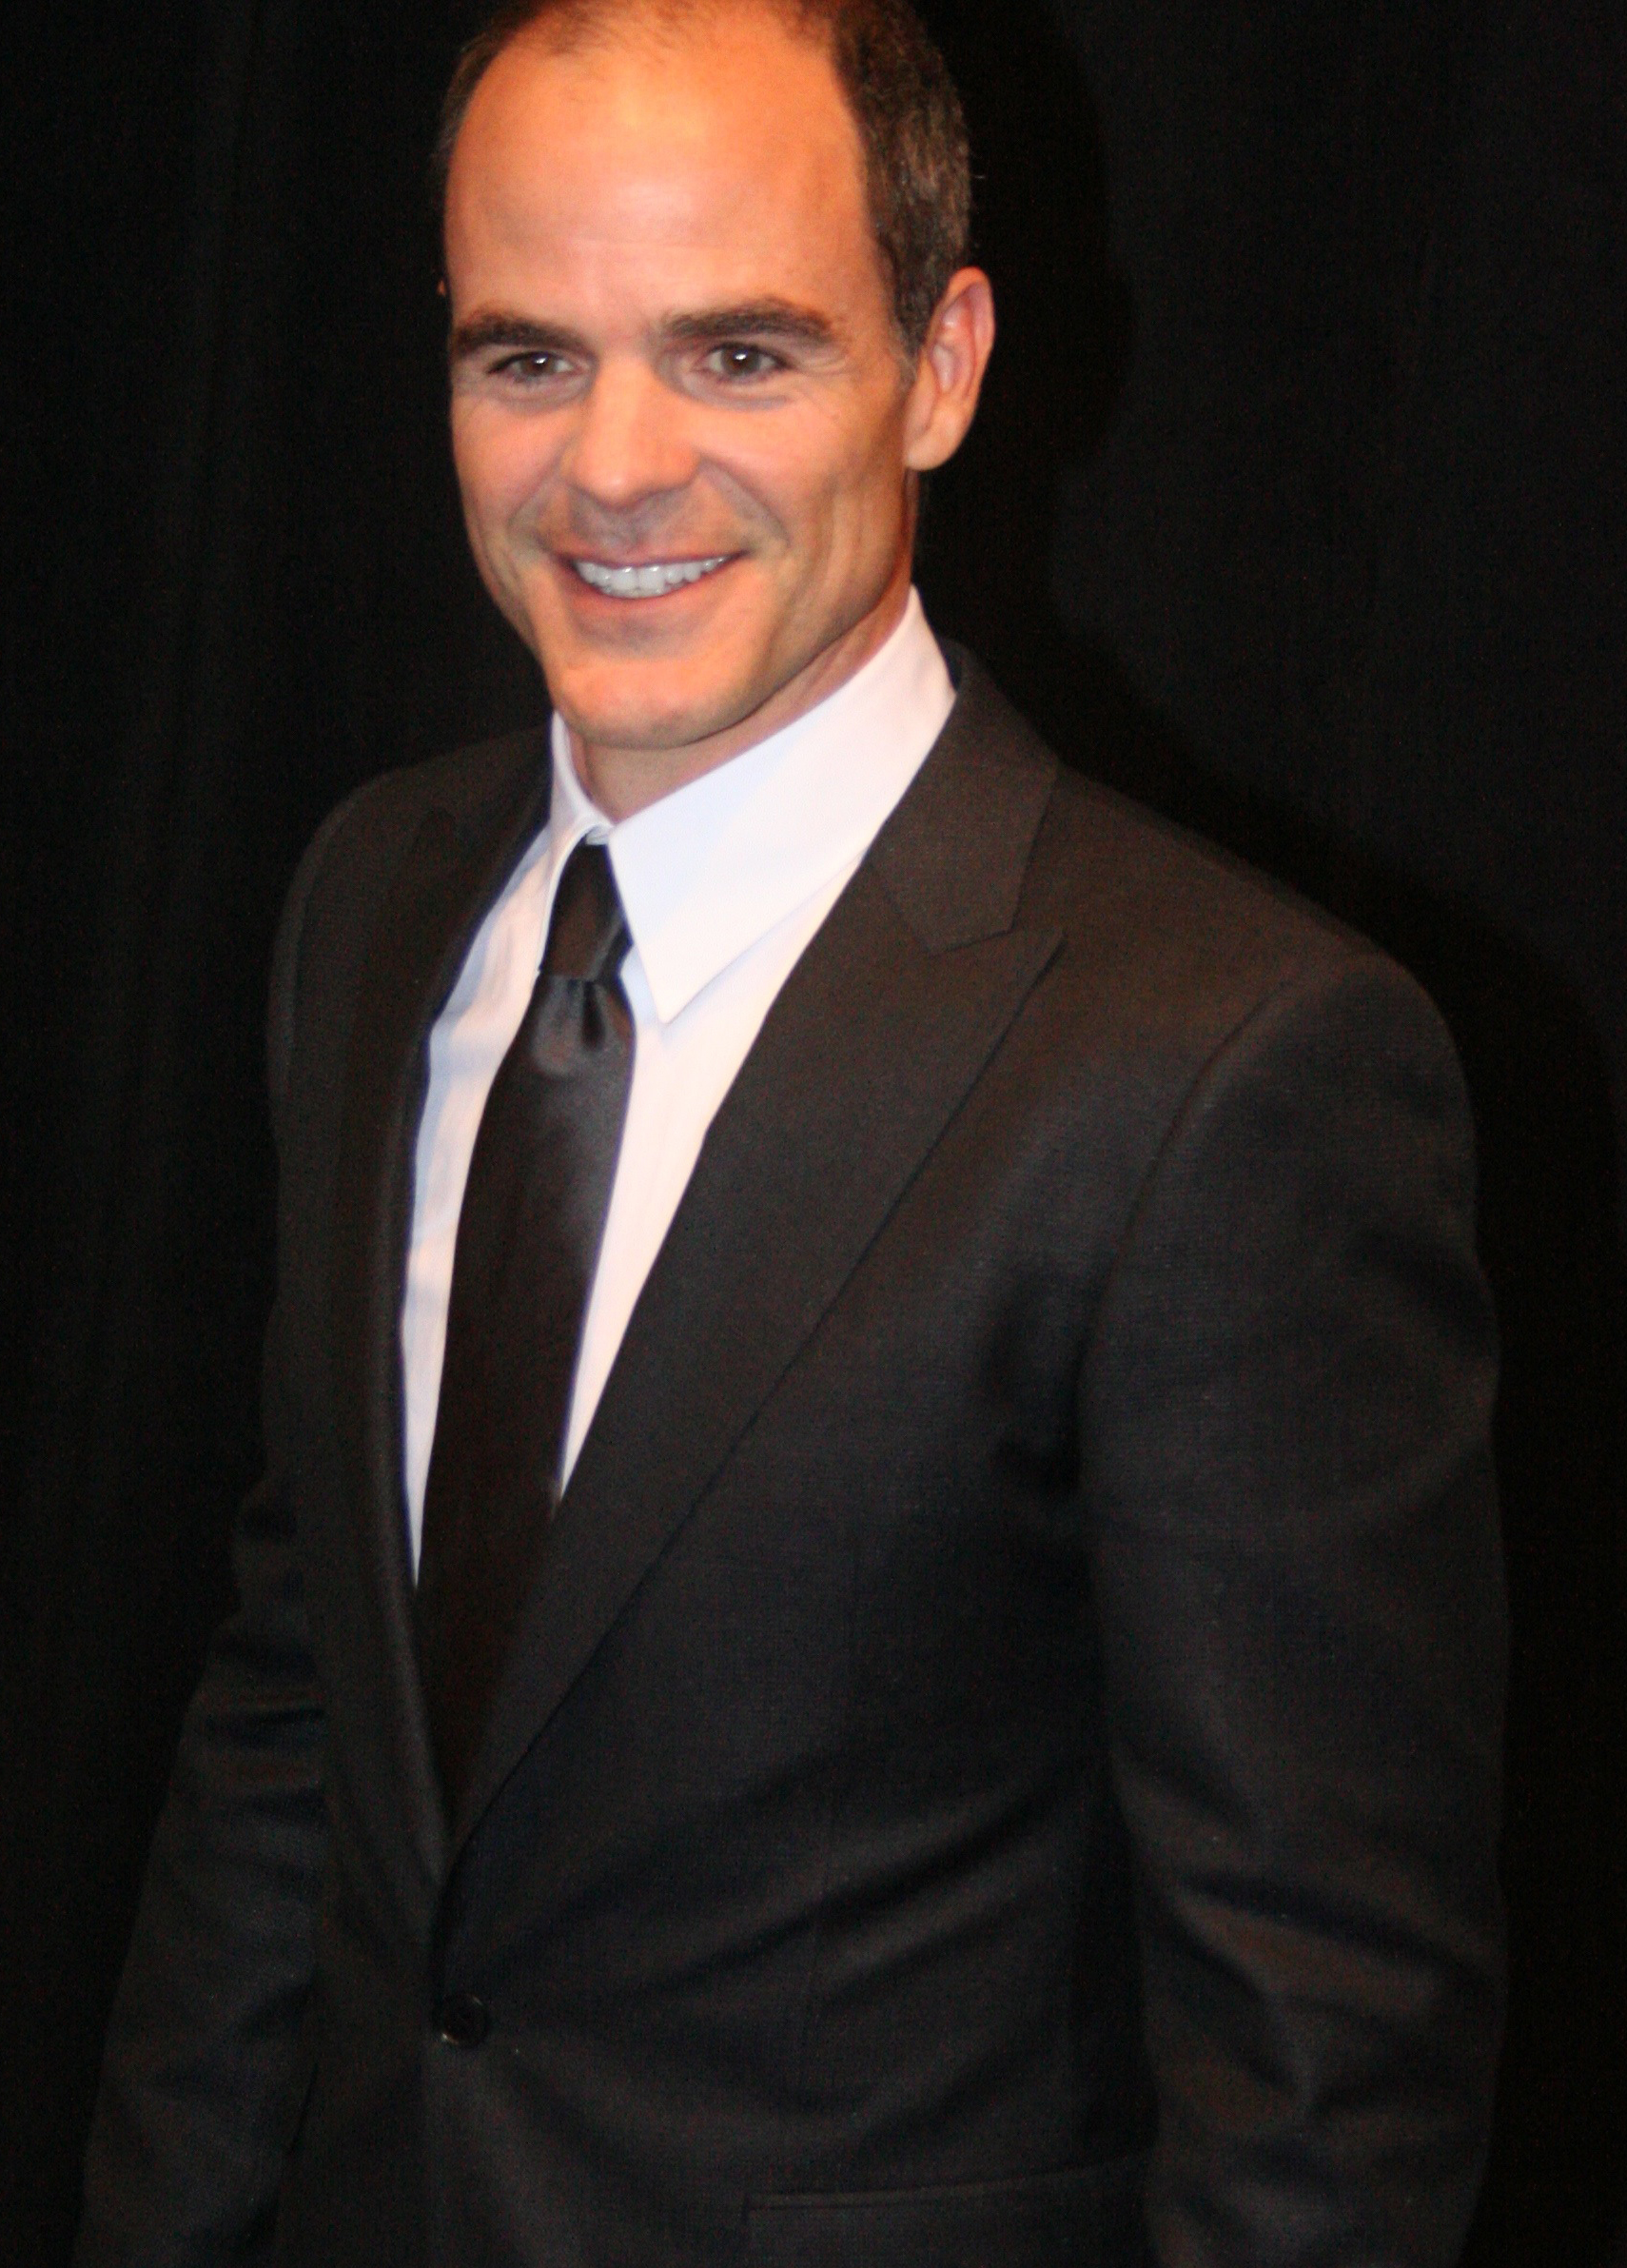 The 49-year old son of father (?) and mother(?) Michael Kelly in 2018 photo. Michael Kelly earned a  million dollar salary - leaving the net worth at 3 million in 2018